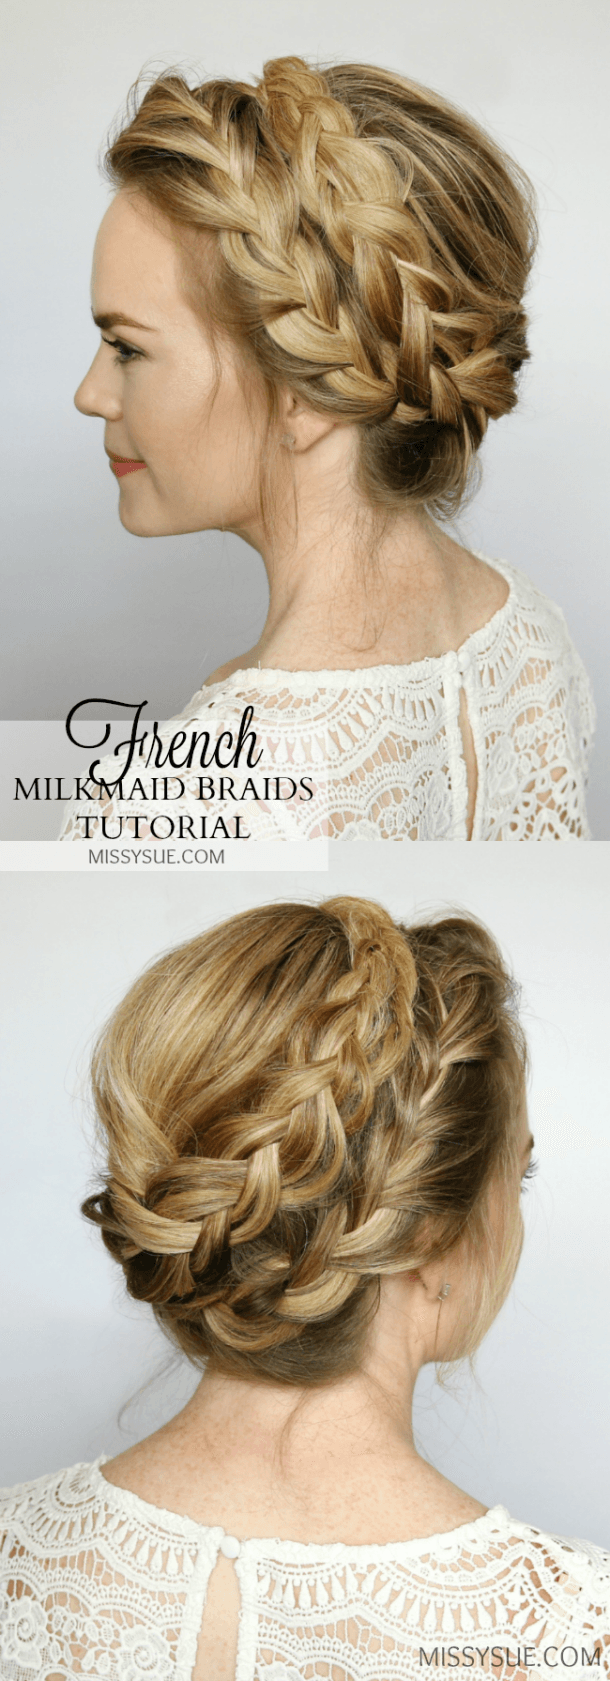 Forum on this topic: Video Tutorial: The Reverse Milkmaid Braid, video-tutorial-the-reverse-milkmaid-braid/